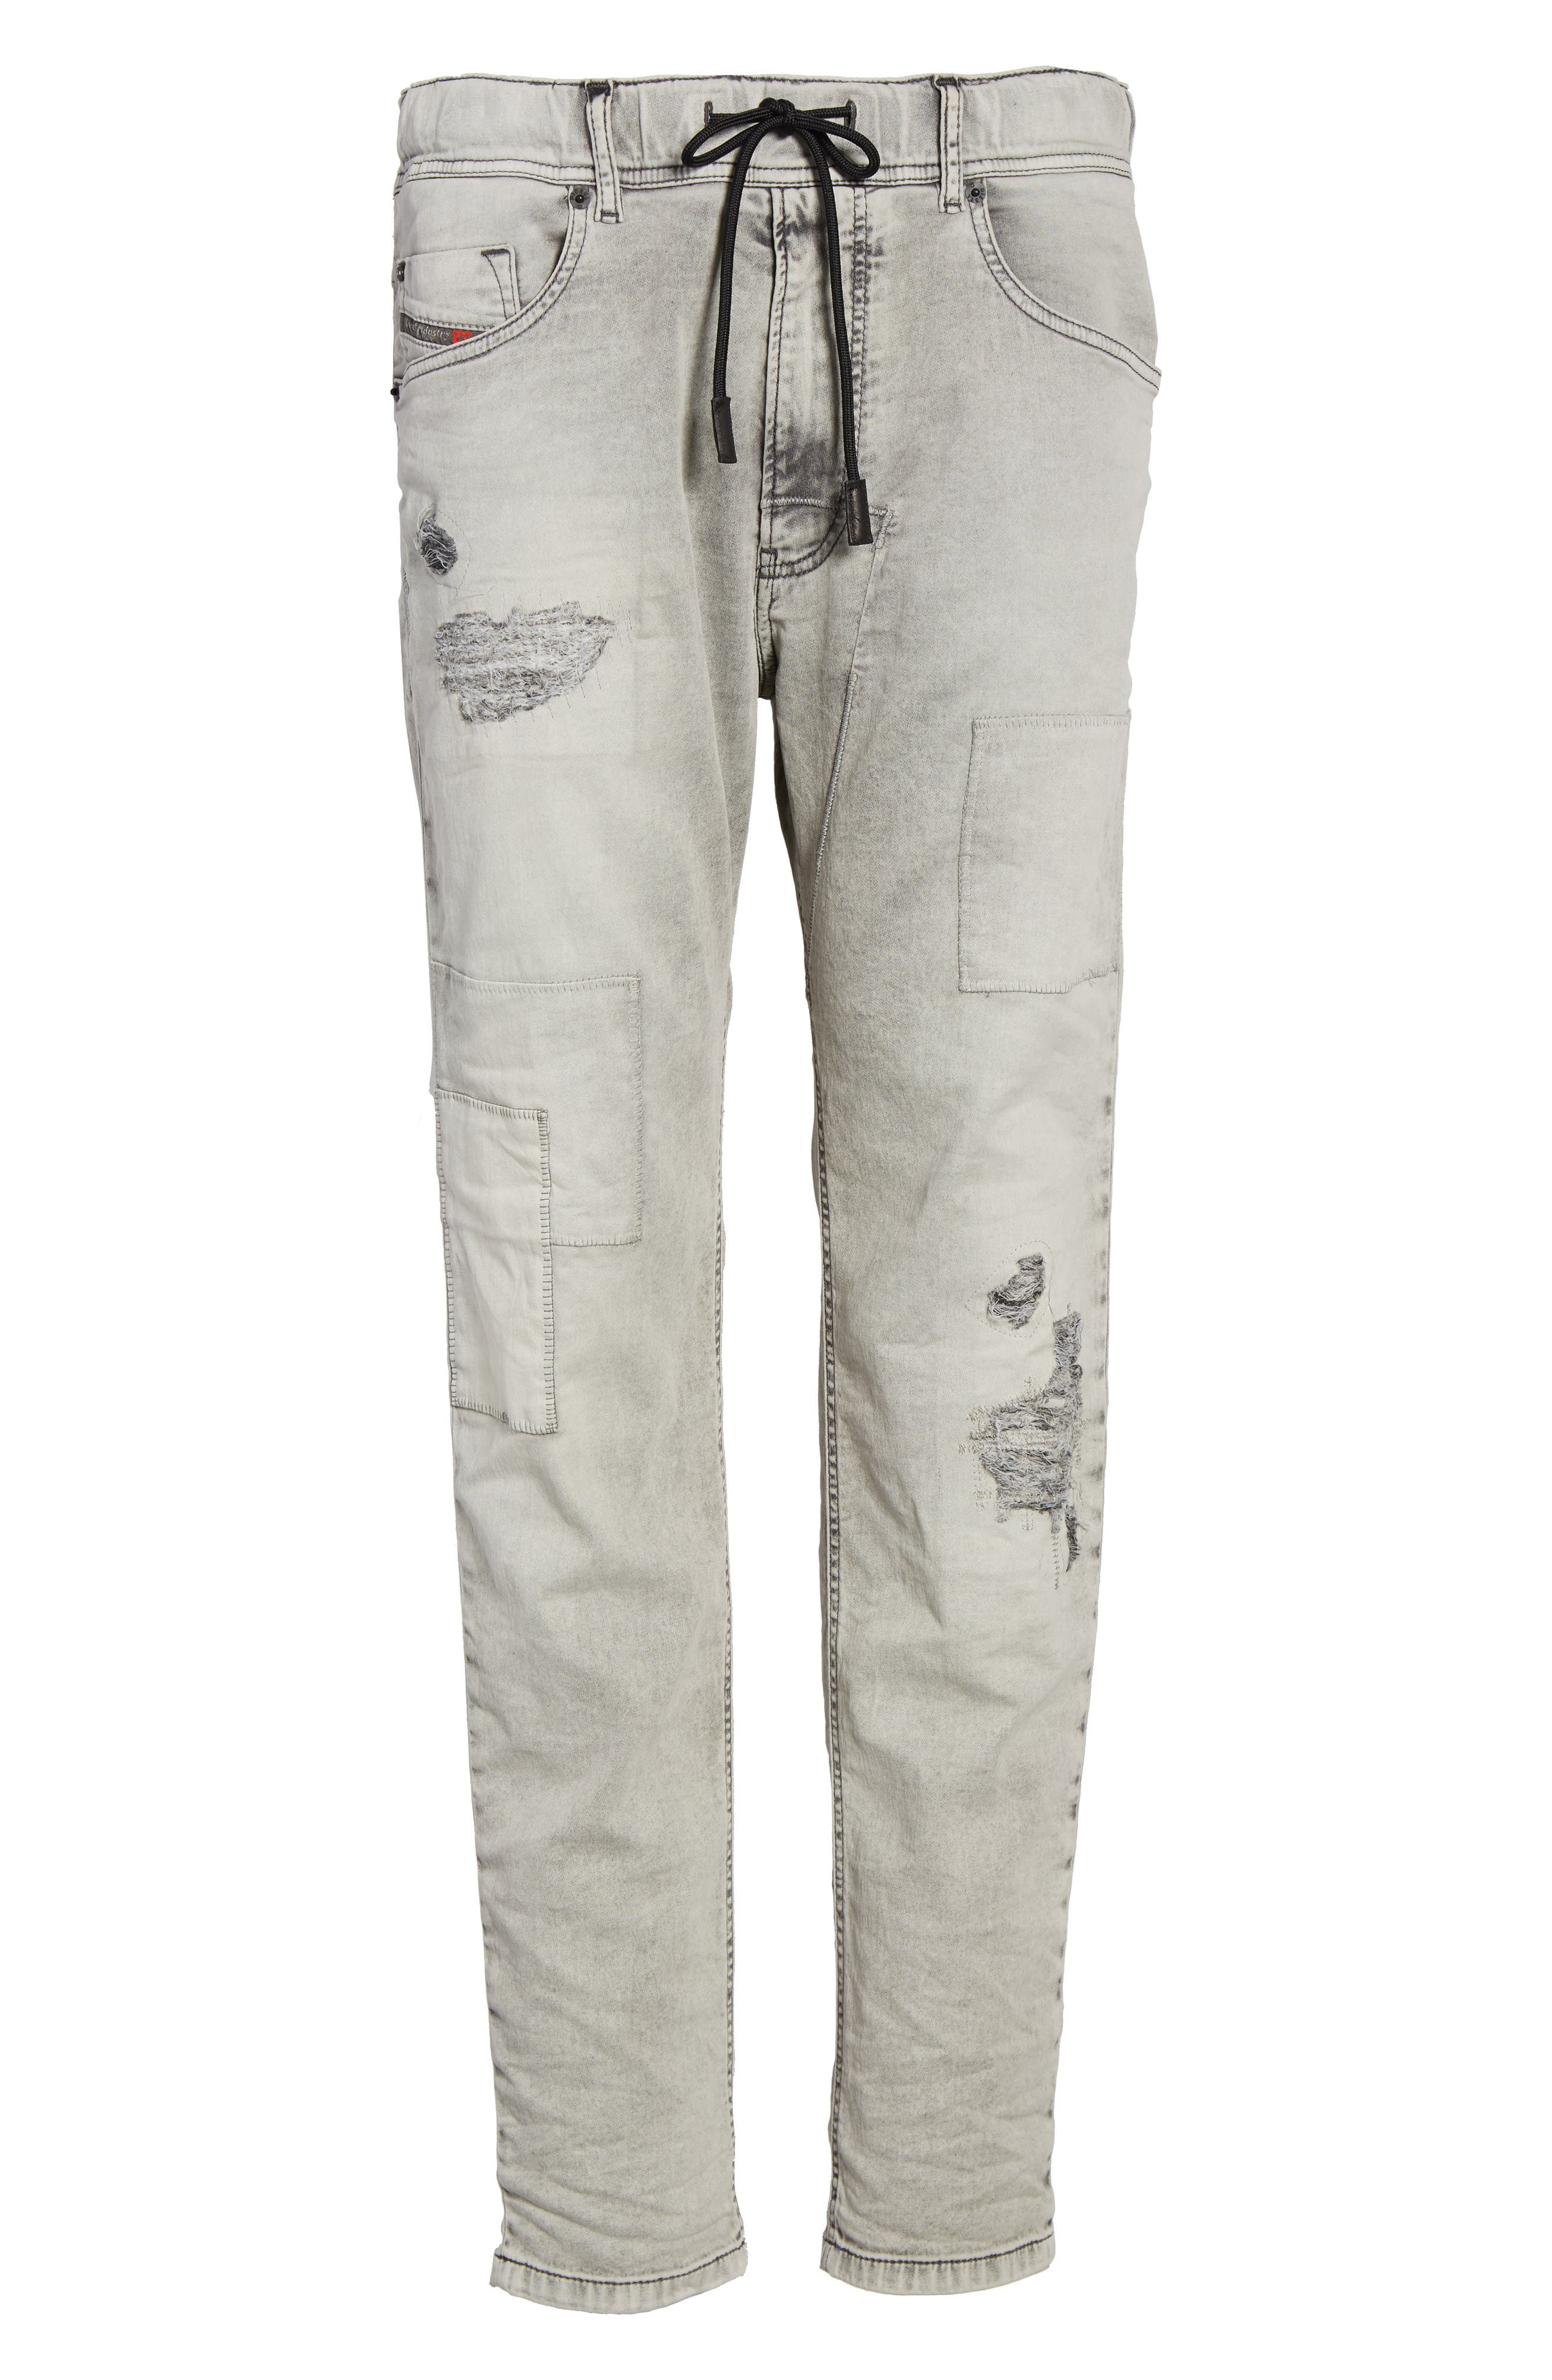 Narrot Slouchy Skinny Fit Jeans,                             Alternate thumbnail 6, color,                             008